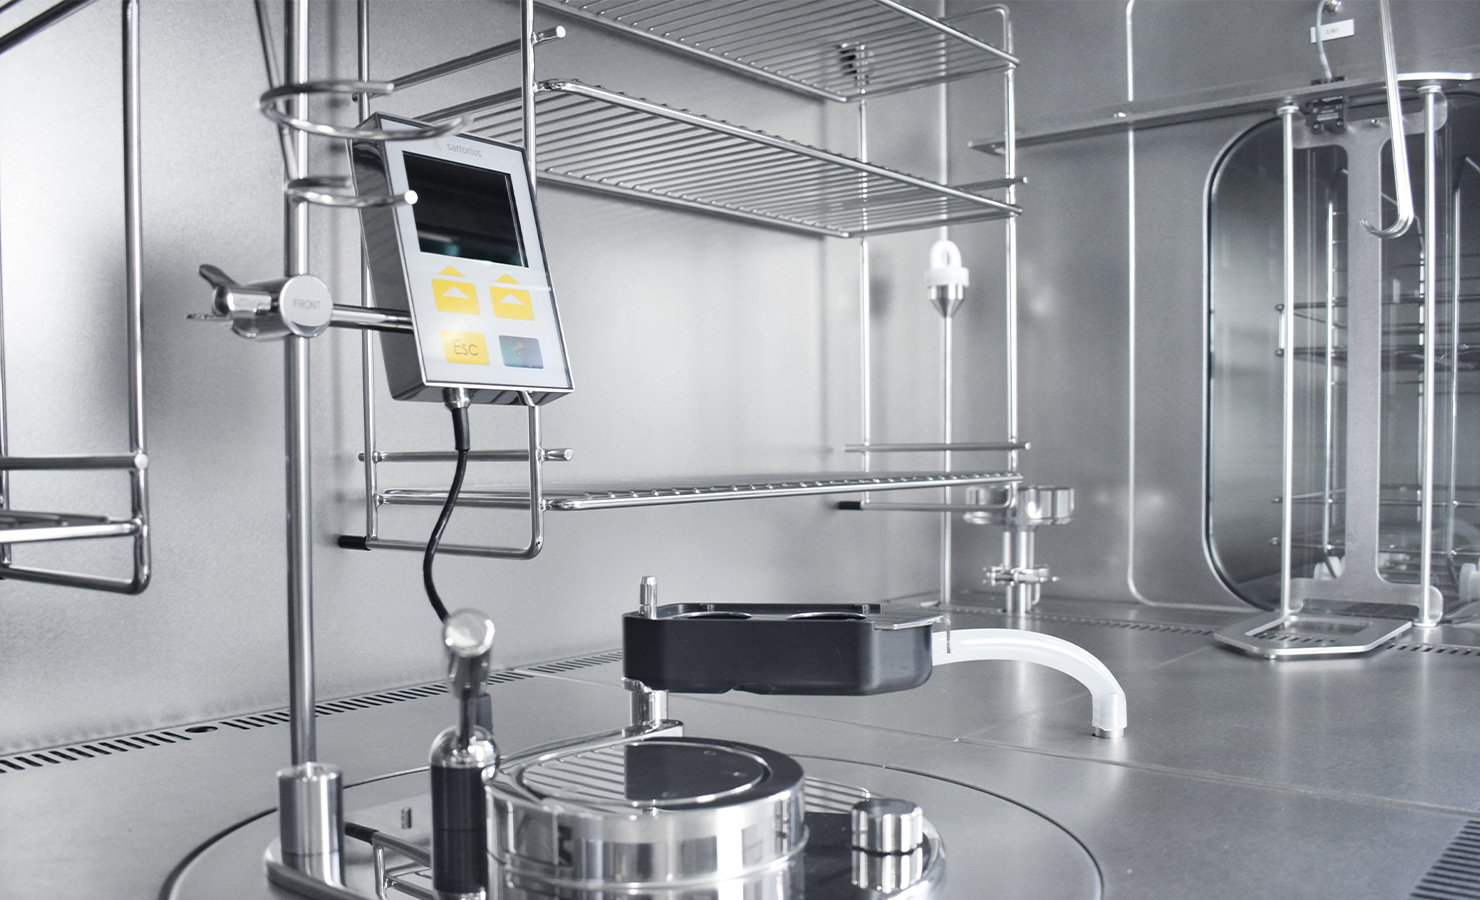 SKAN's PSI-M modular work isolator is an adaptable isolator for aseptic-toxic processes